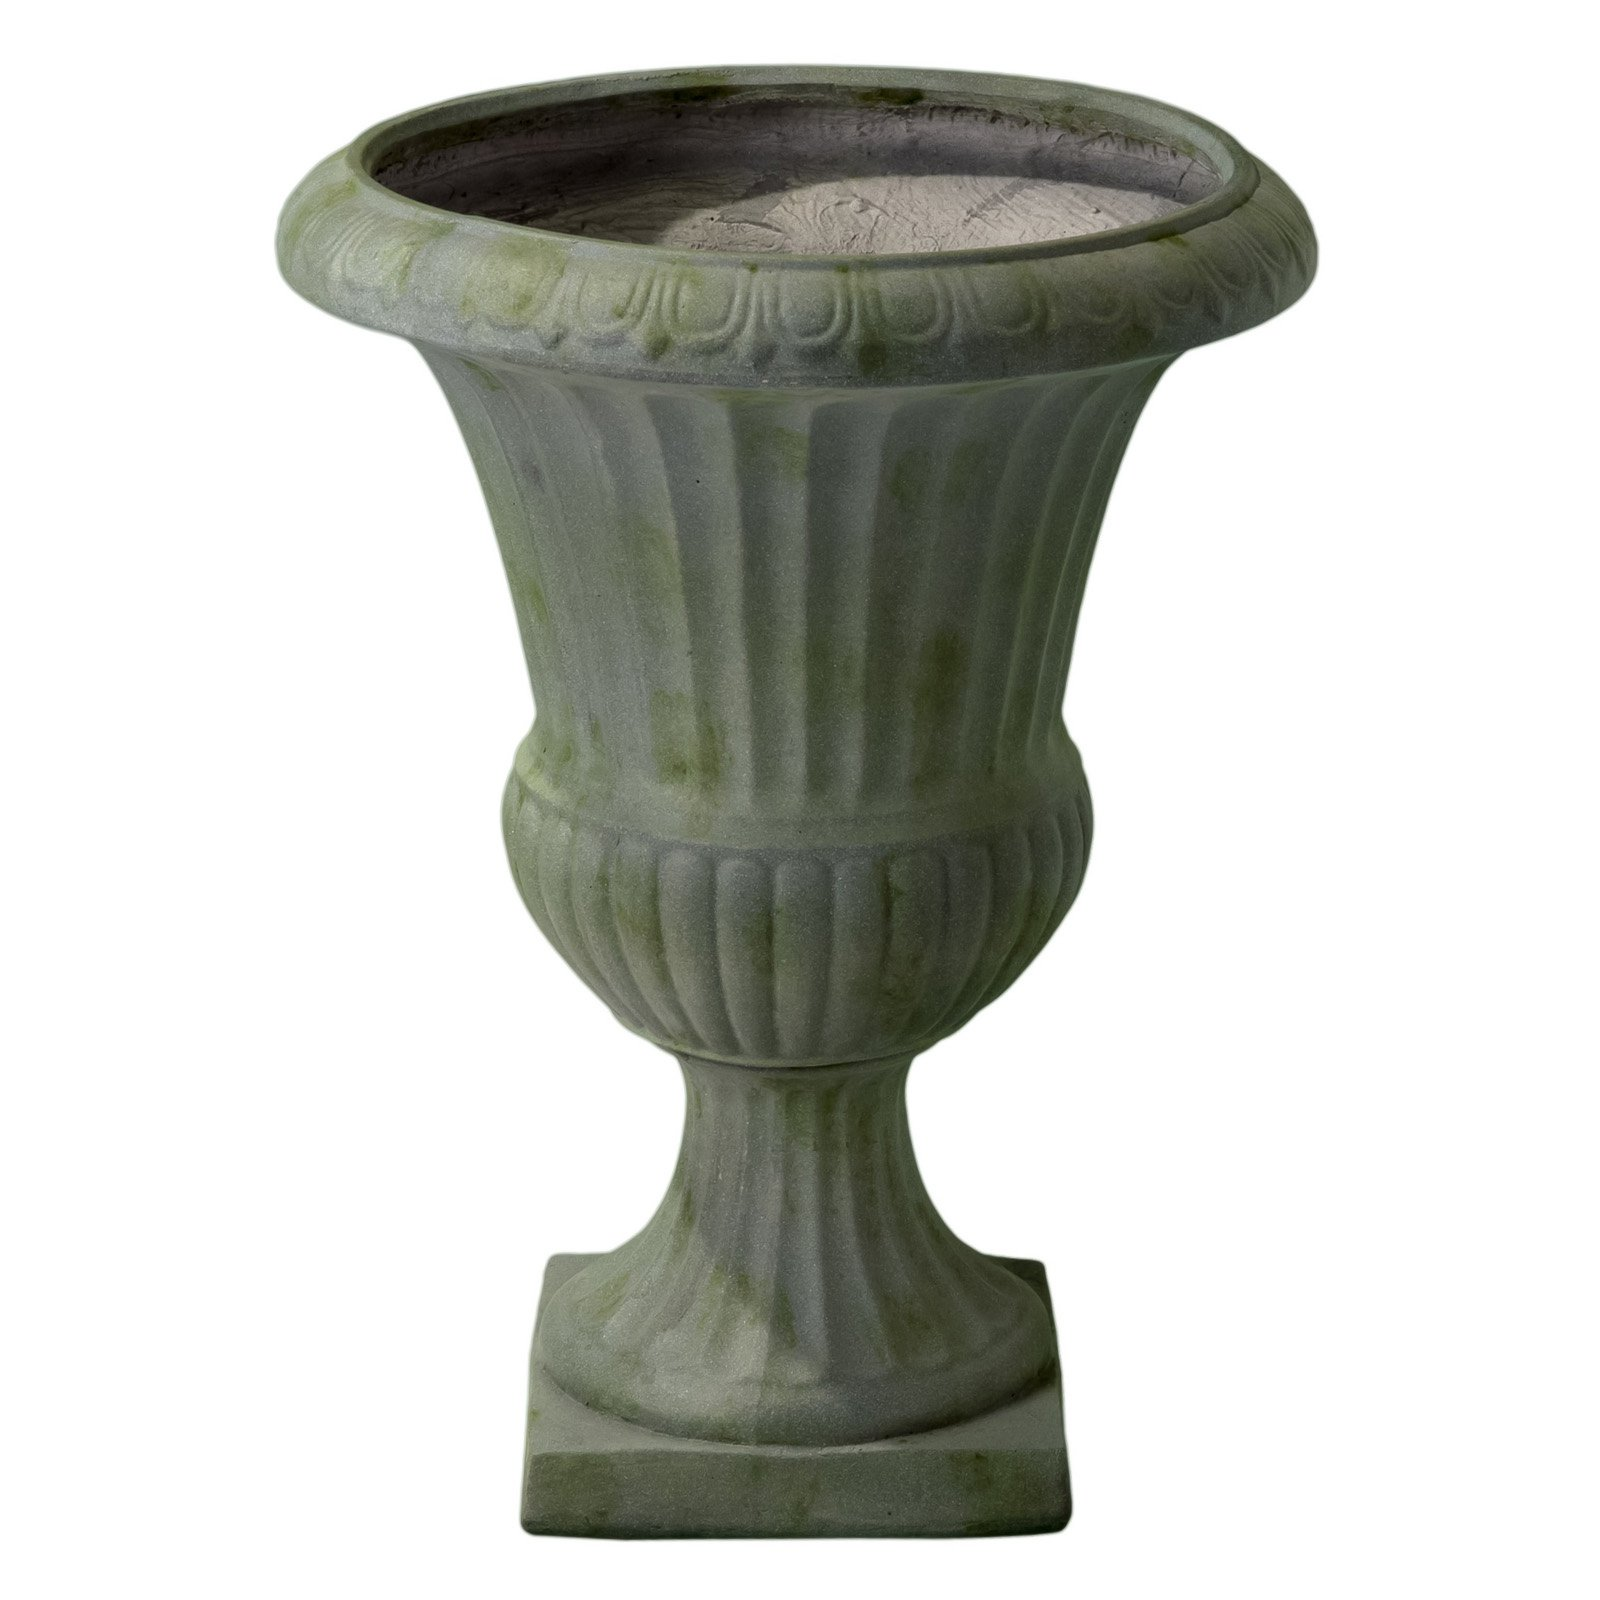 Ulysses 22.5 in. Grey with Green Moss Urn Planter by Best Selling Home Decor Furniture LLC